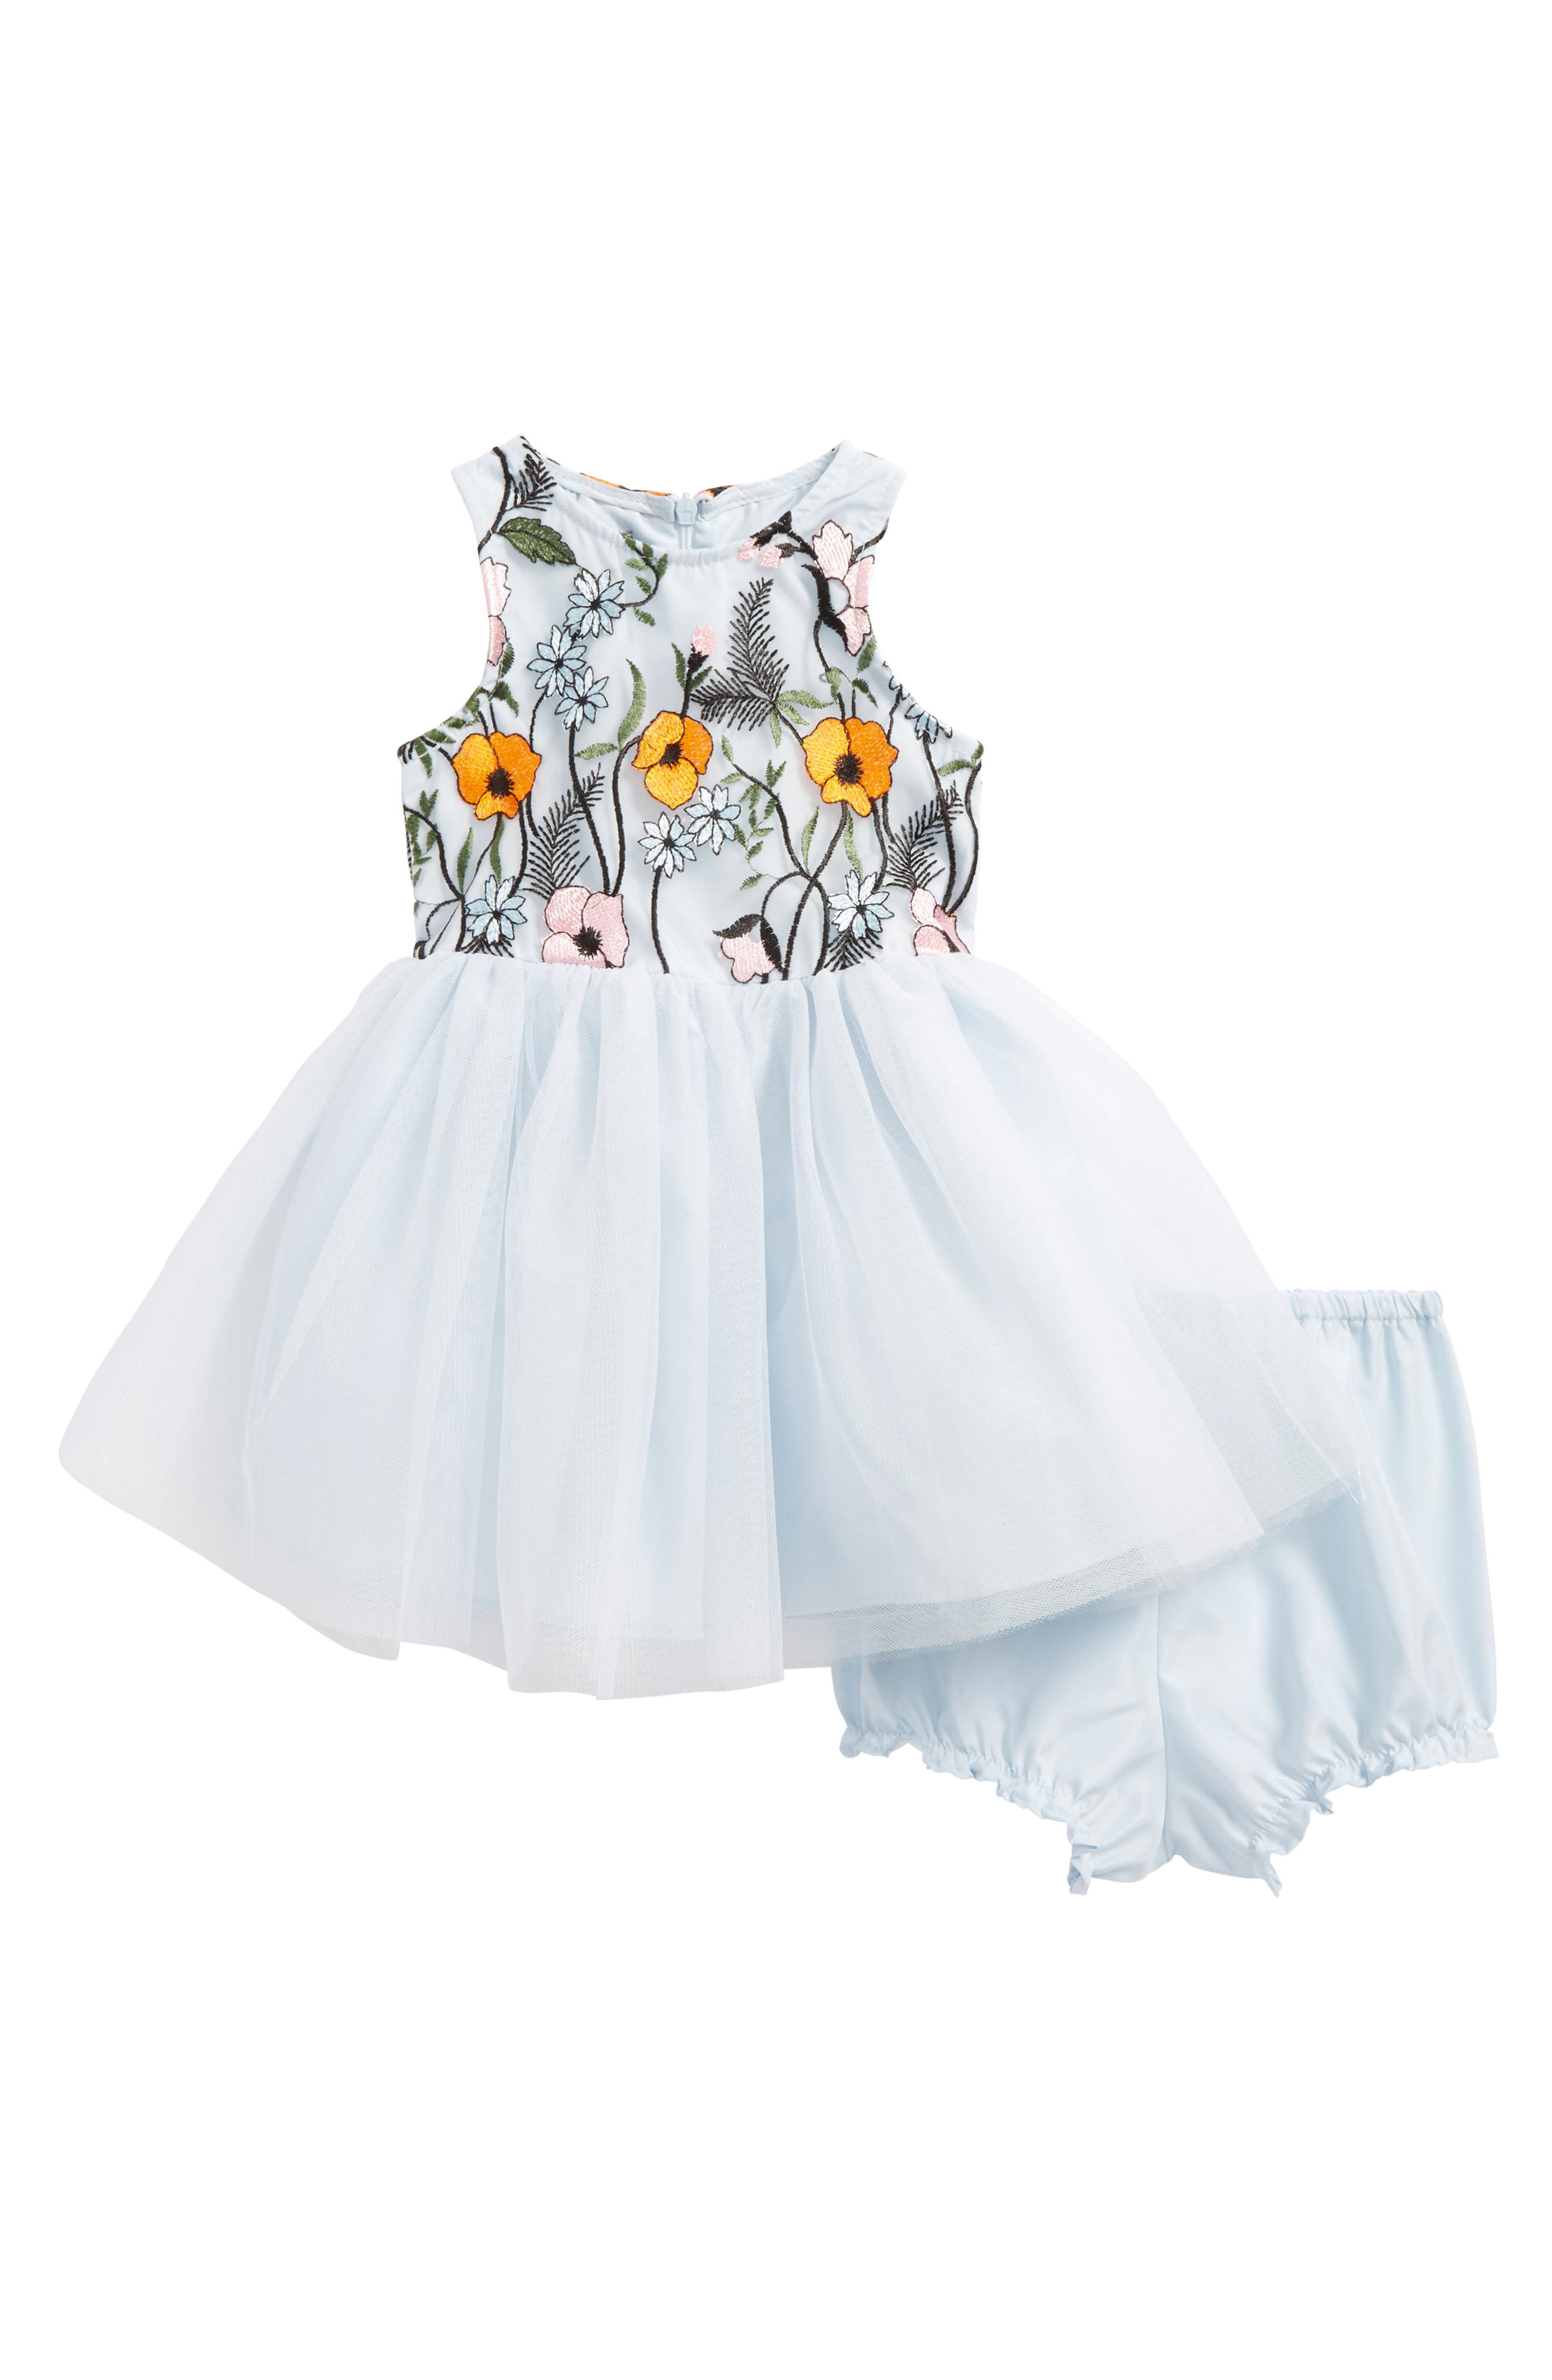 Embroidered Floral Tulle Dress,                             Main thumbnail 1, color,                             460